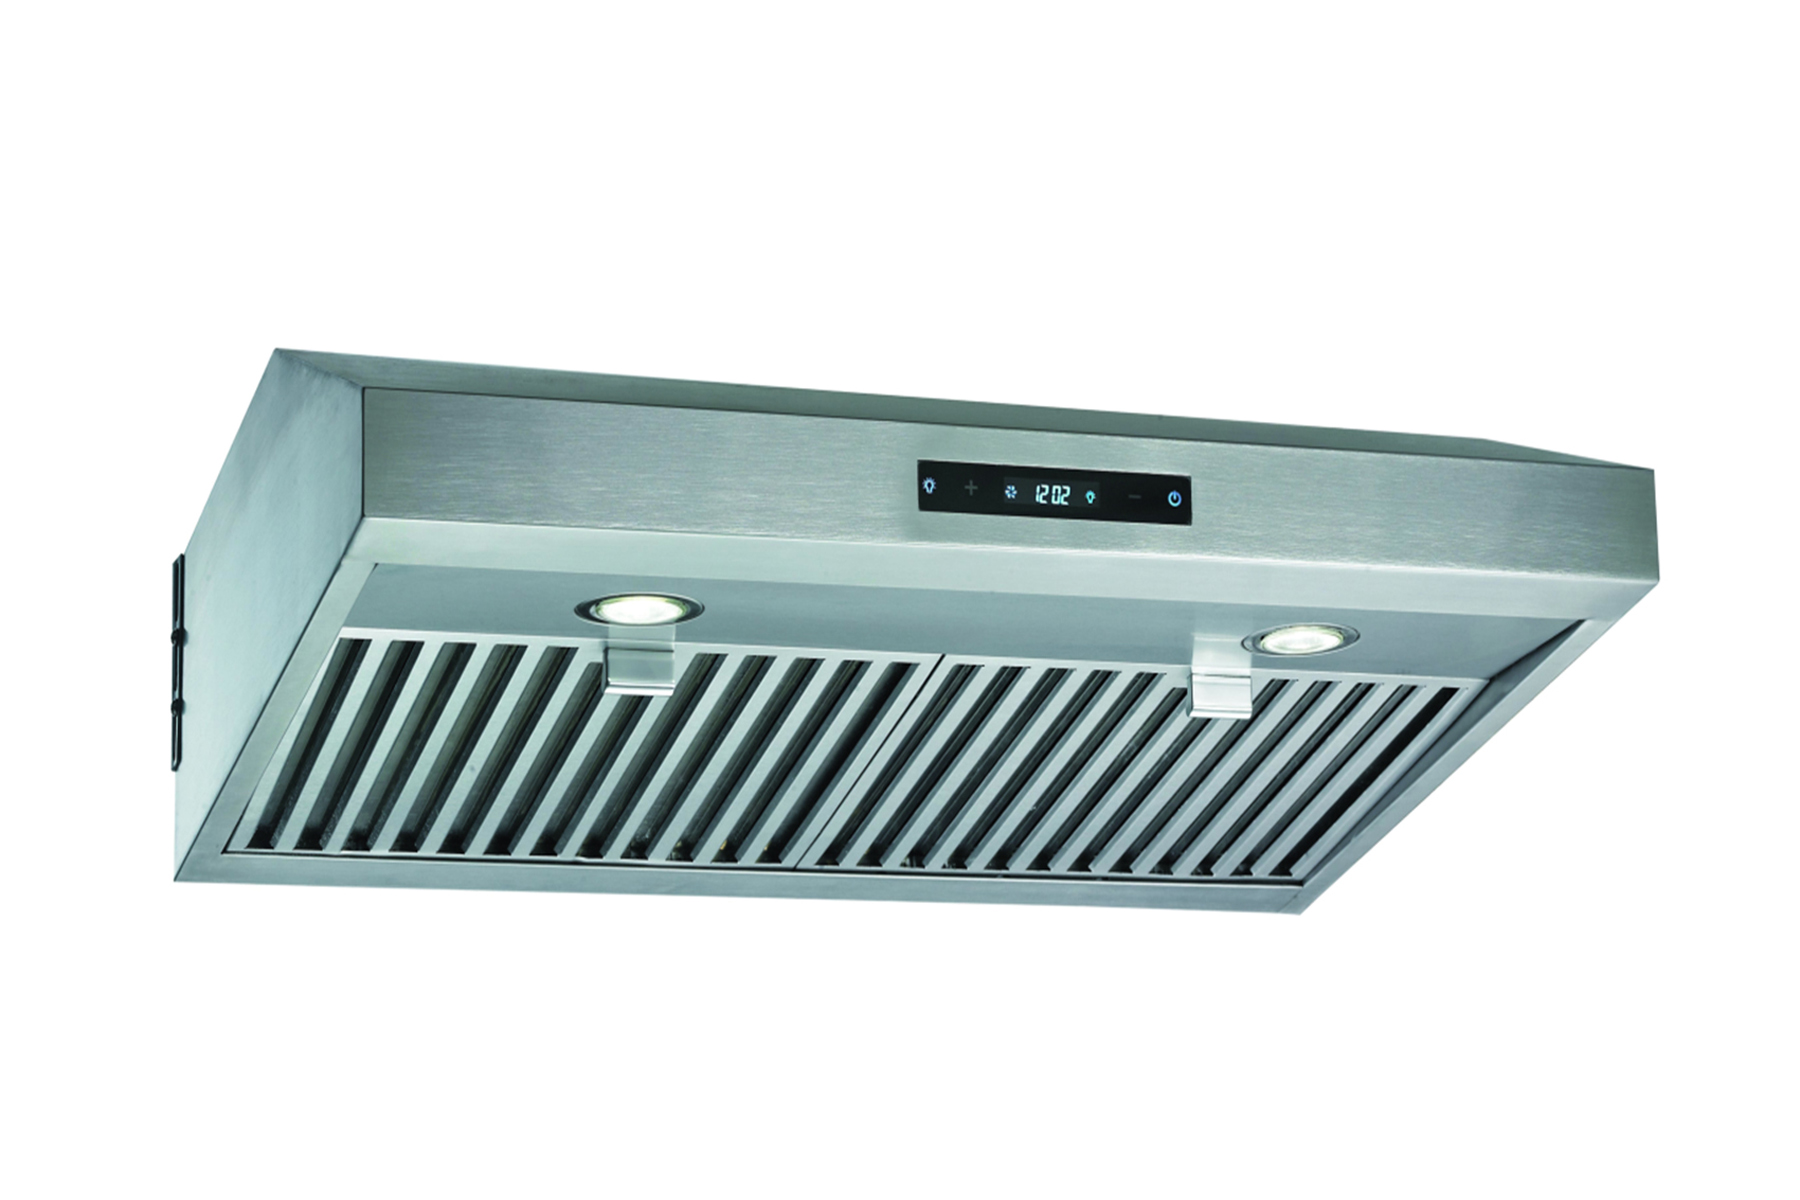 hood kitchen pendant lights images 30 wall mount stainless steel range dual motor fan this brand new under cabinet is equipped with heavy duty motors which increase the suction dramatically compare to conventional single